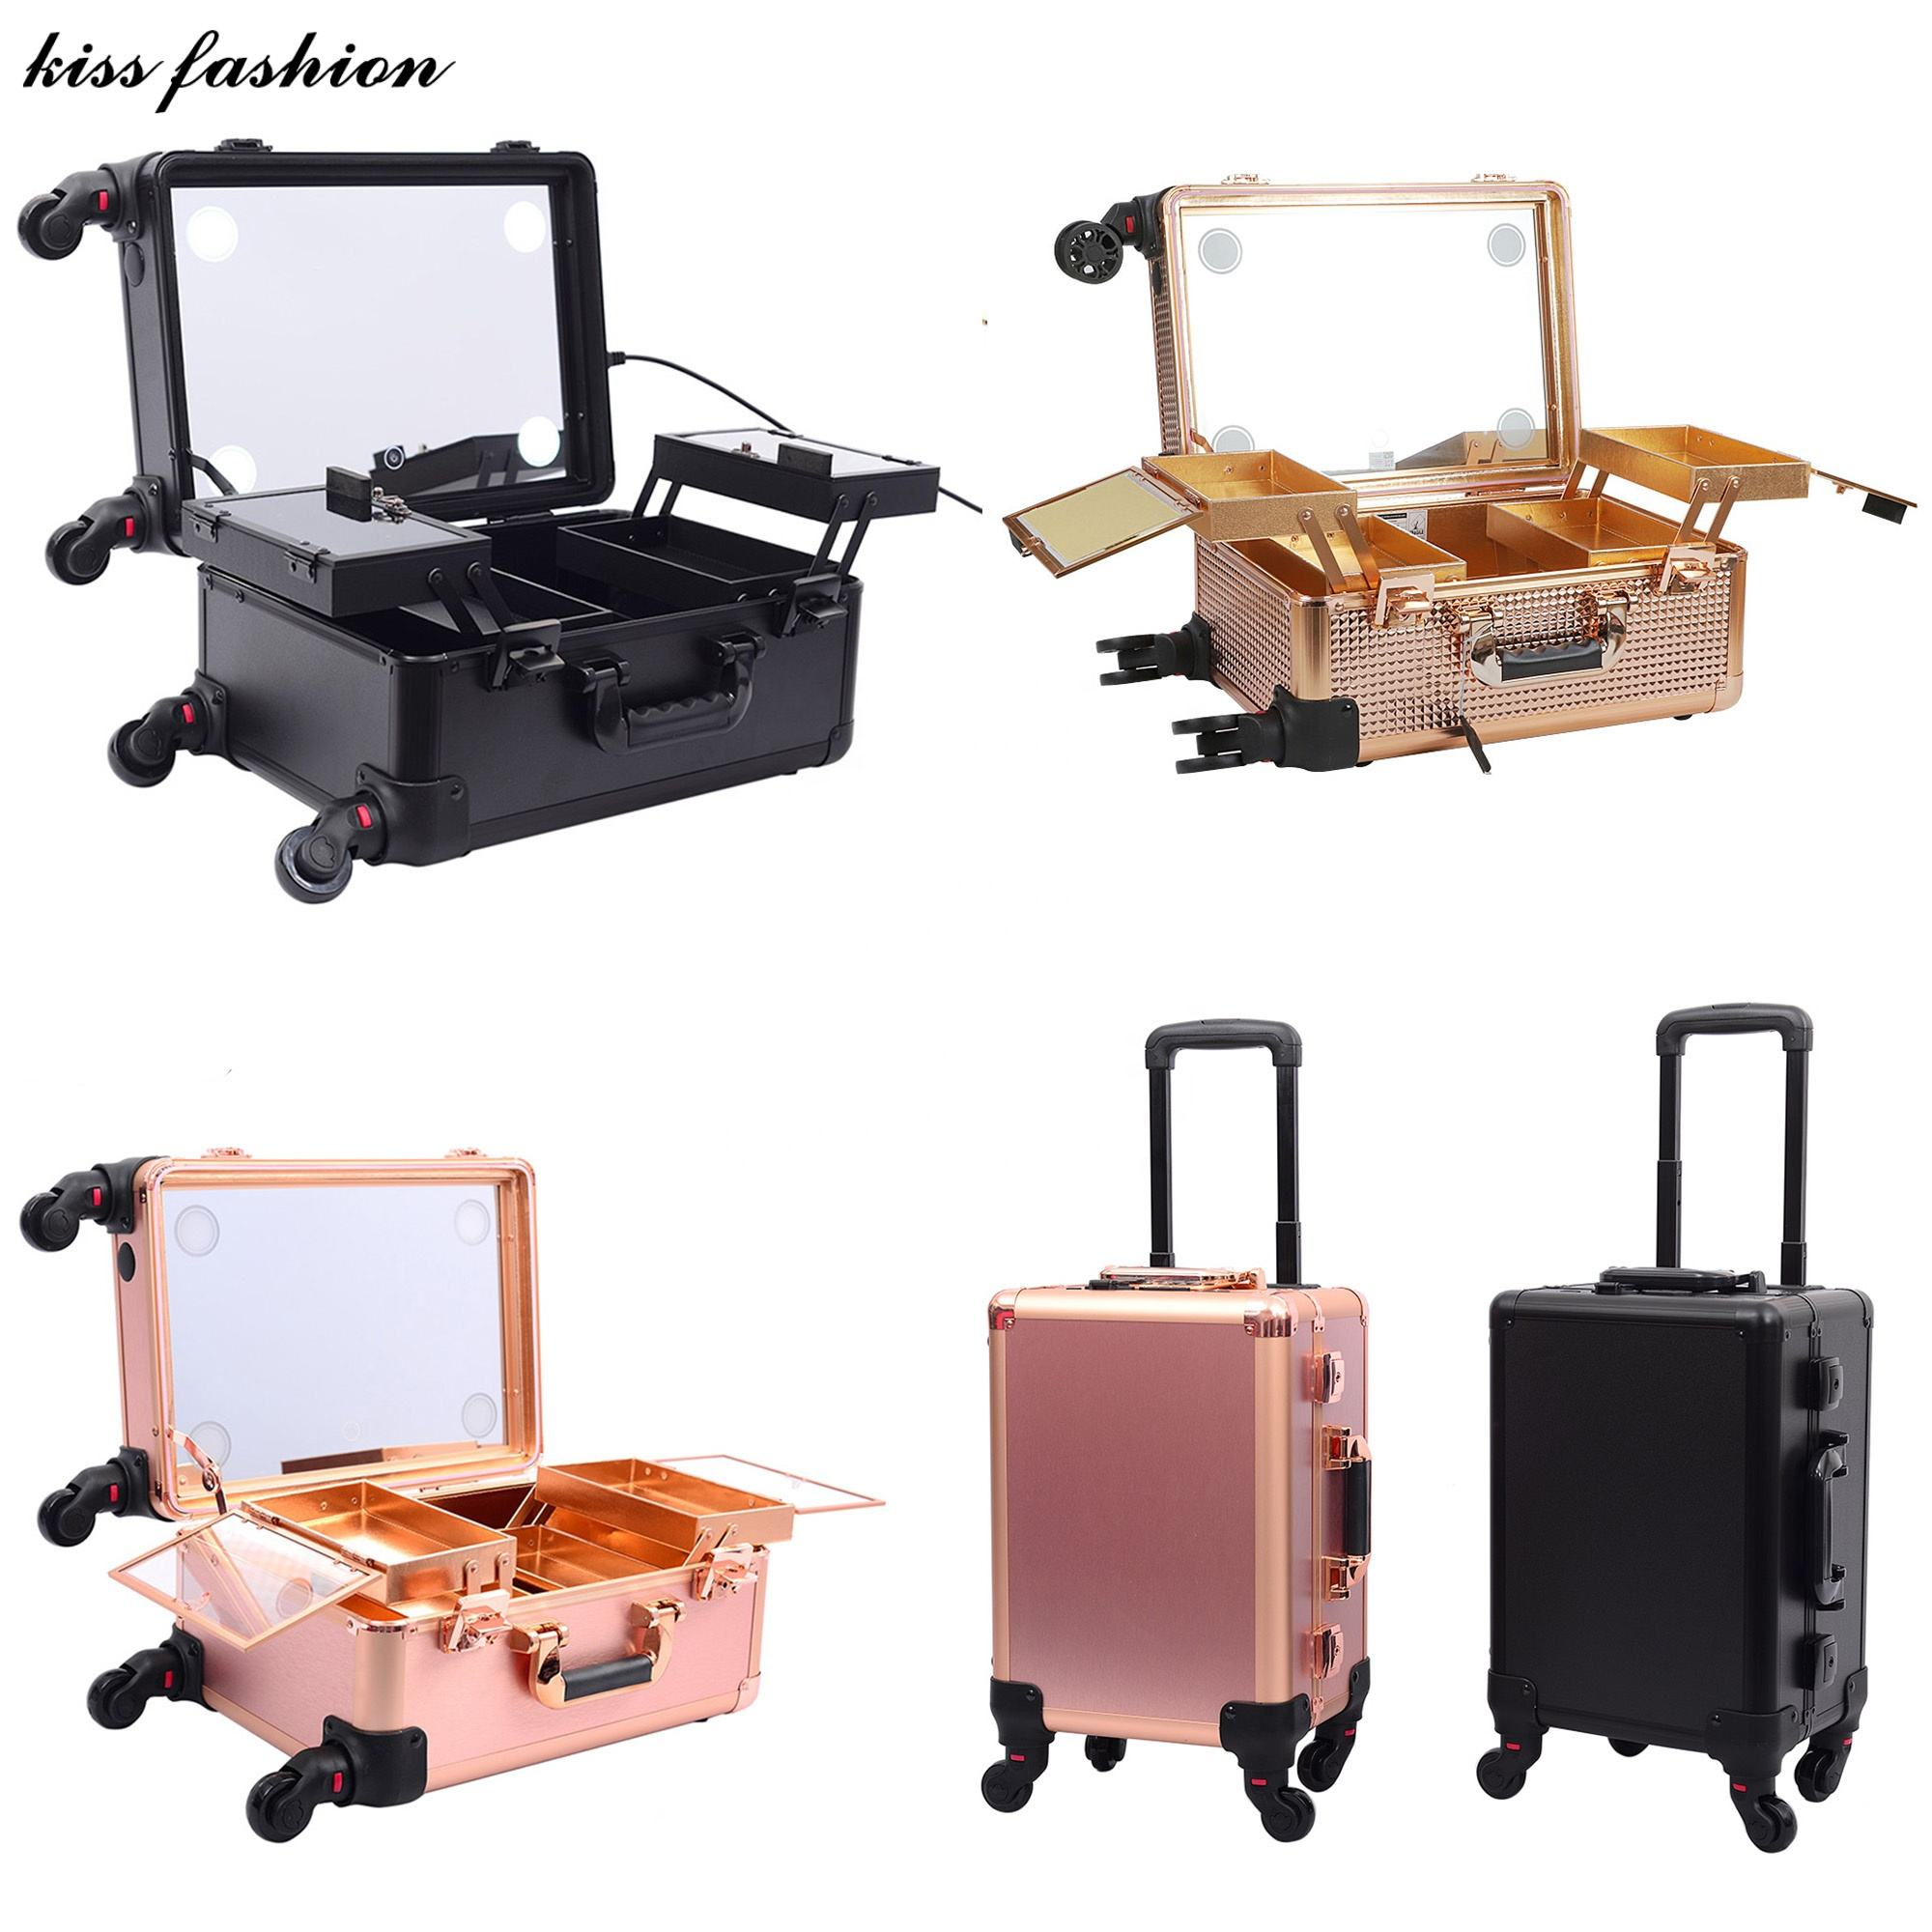 lights decorative beauty box with mirror Professional beauty fashion aluminum makeup case with stand legs